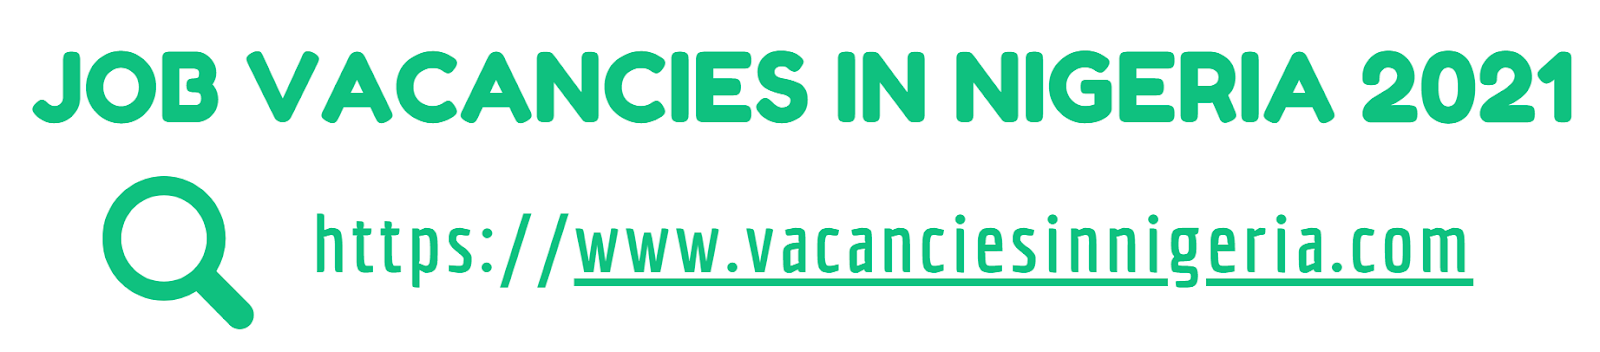 JOB VACANCIES IN NIGERIA 2021